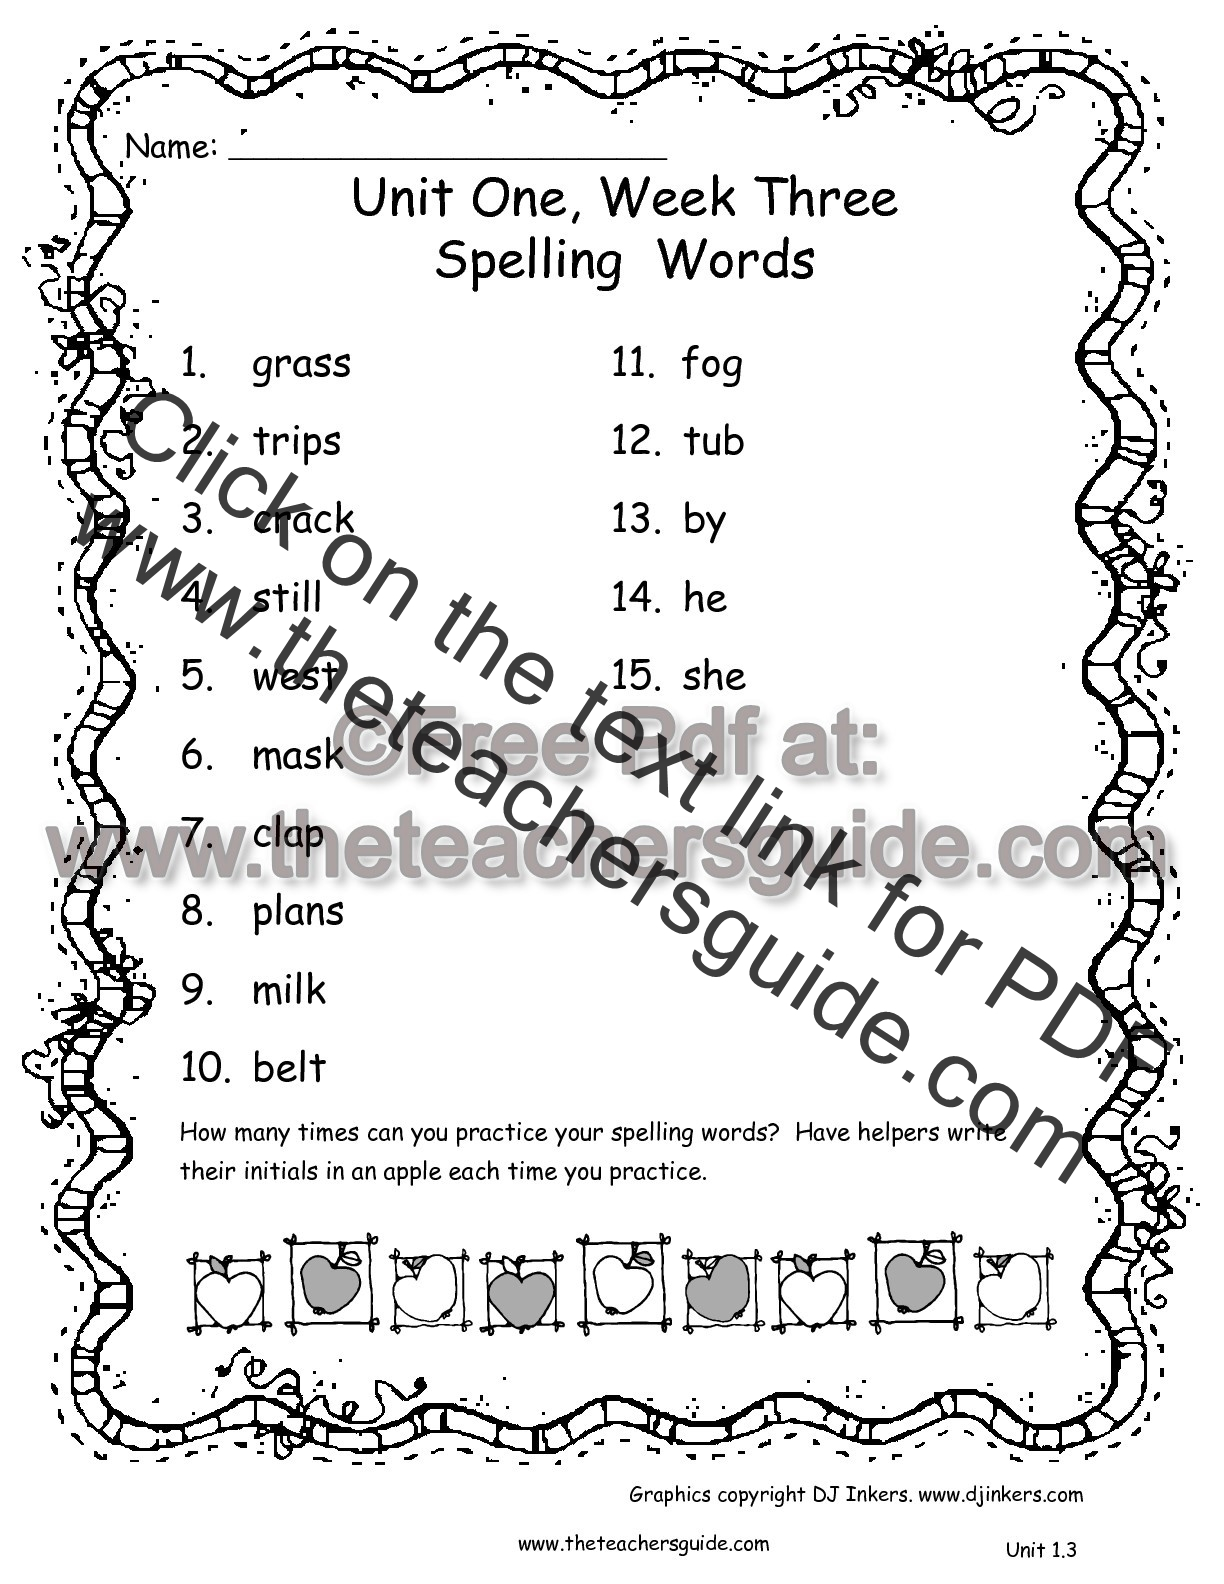 worksheet Closed Syllable Worksheets open syllable worksheets 2nd grade templates and wonders second unit three week two printouts closed syllables